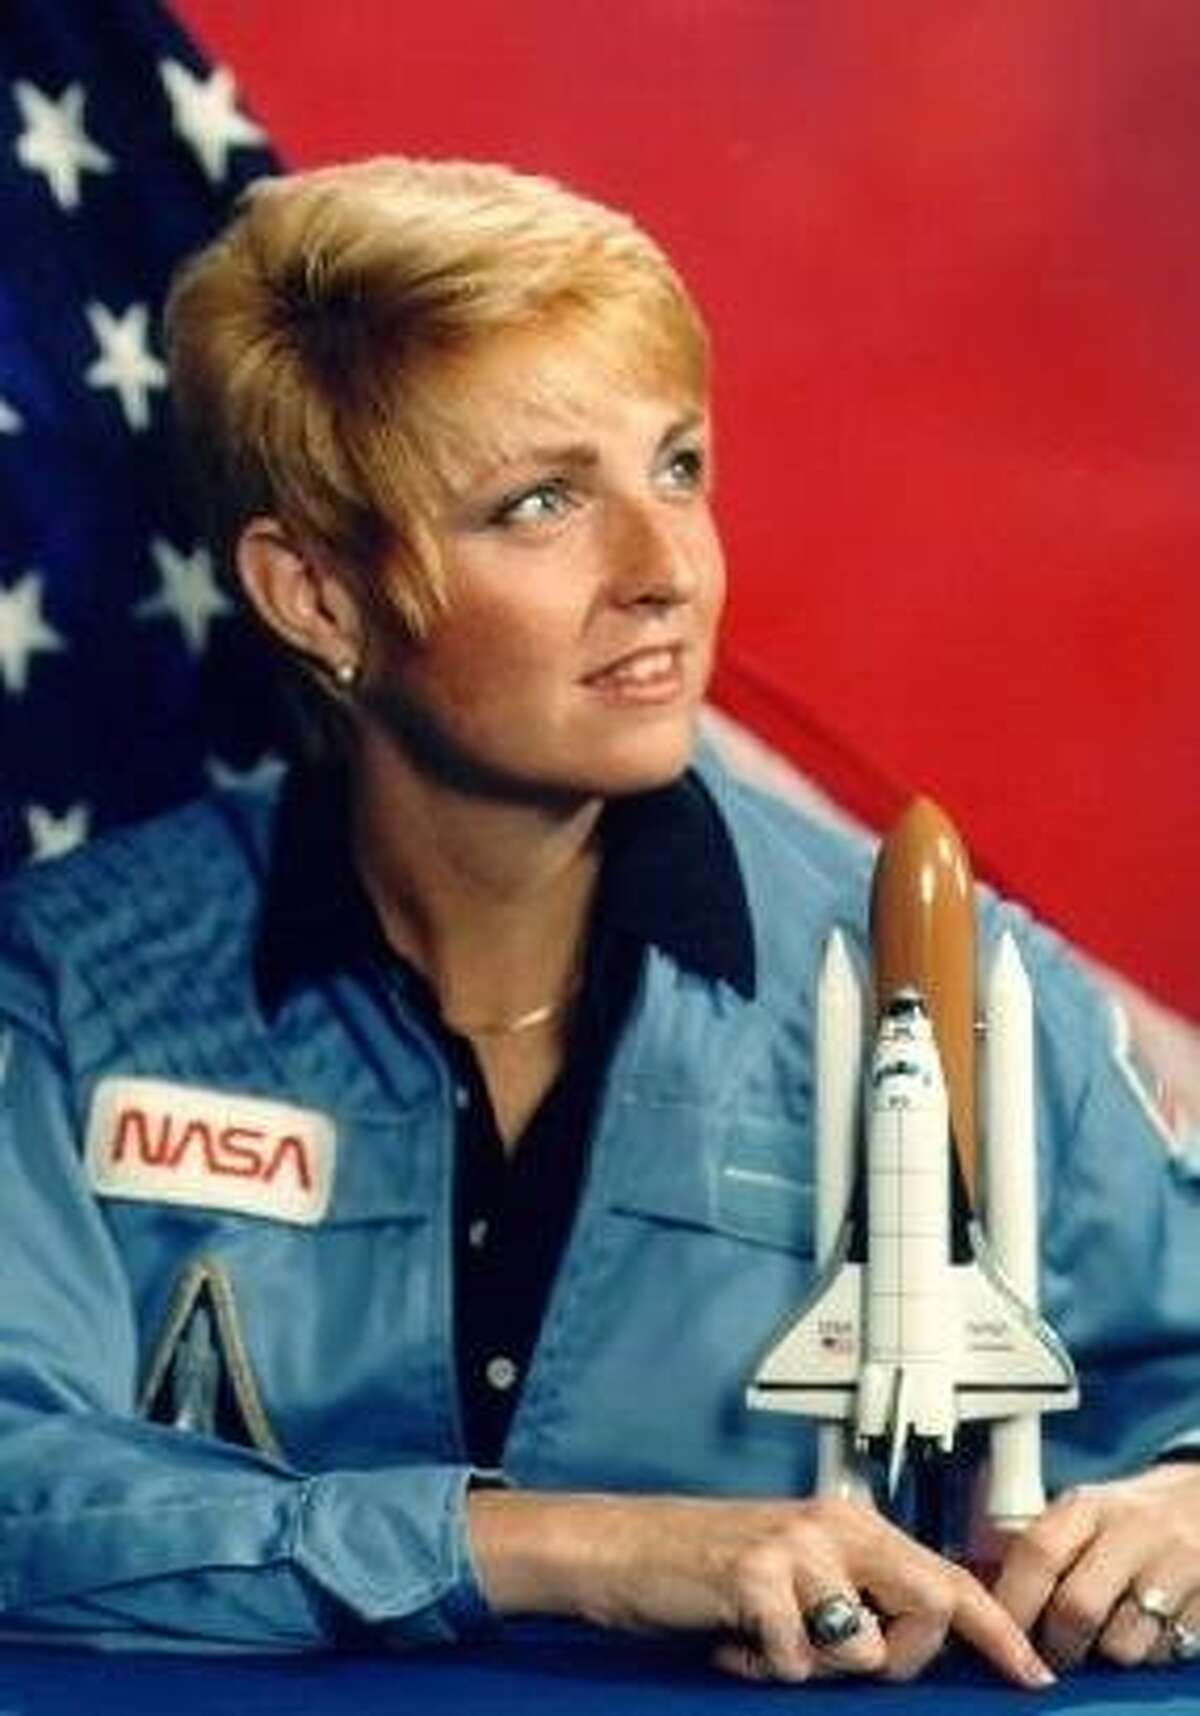 Millie Hughes-Fulford, astronaut and scientist in San Francisco, went into orbit in 1991 aboard the Space Shuttle Columbia.